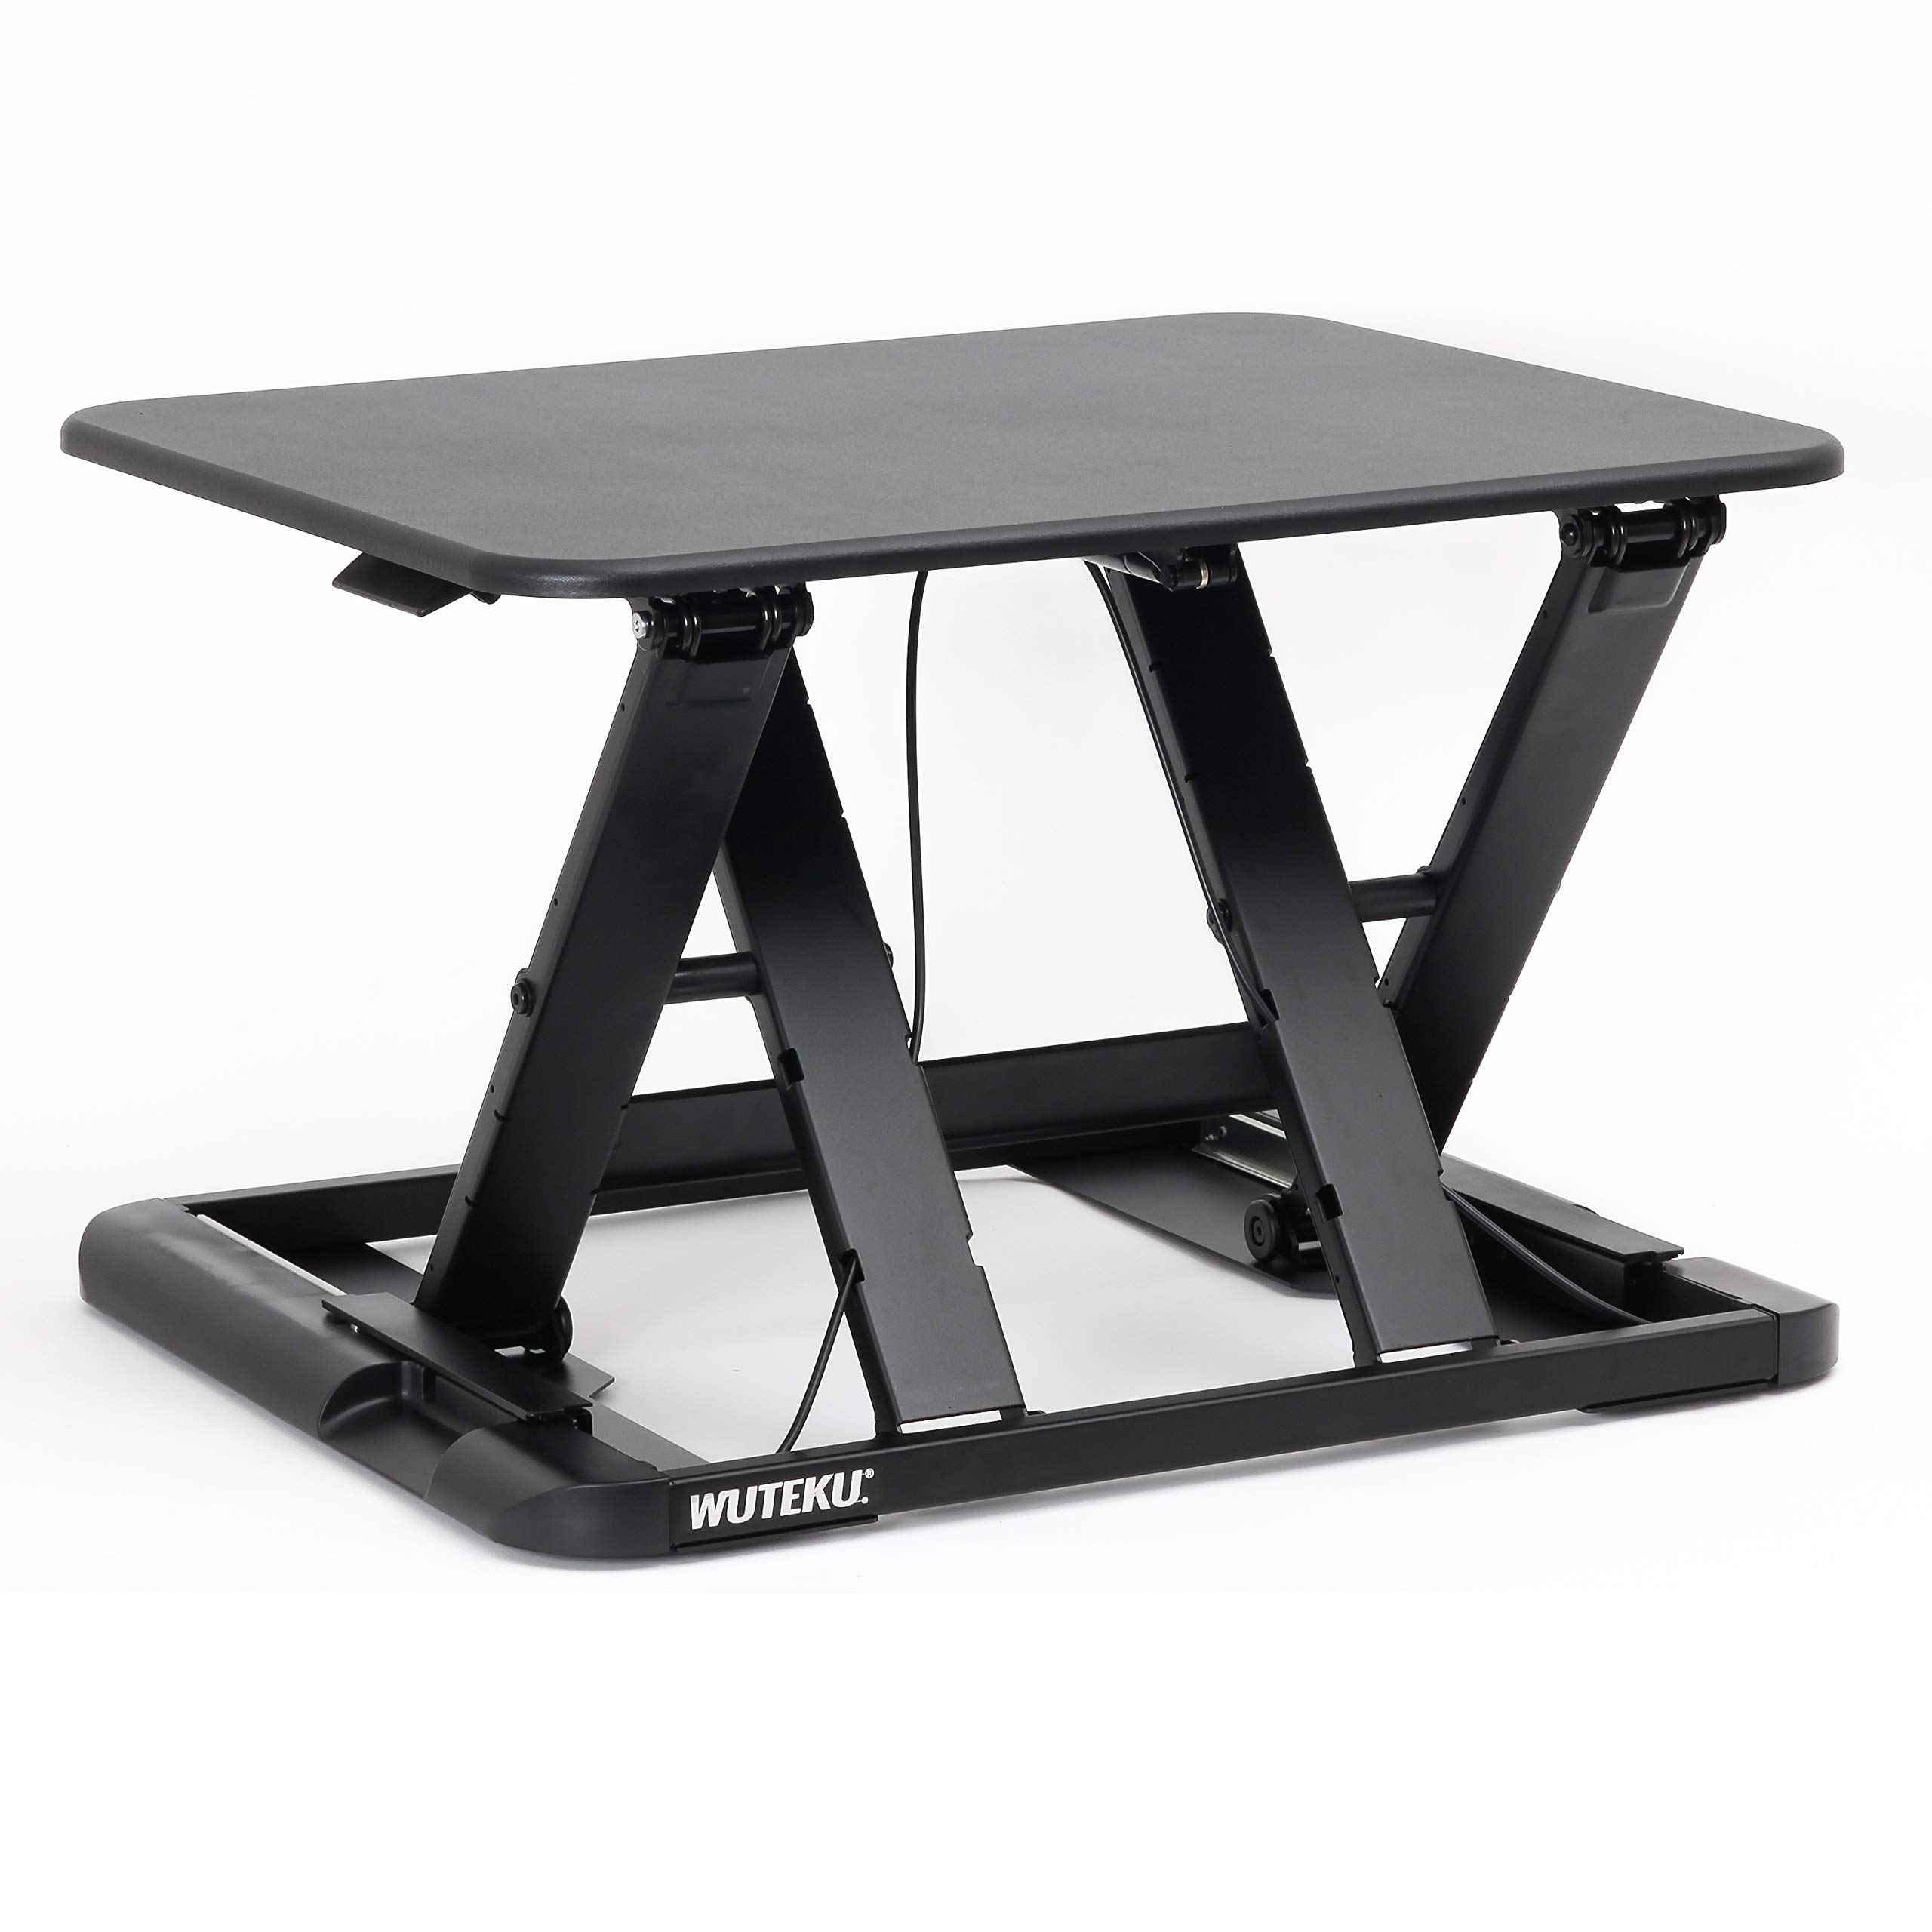 Height Adjustable Stand Up Desk Converter Ergonomic Sit Stand Riser - Flat Top Table Size 22x26 Supports 30lbs - No Assembly Required - Premium Quality and Very Sturdy - Perfect for Laptops or iMacs by WUTEKU